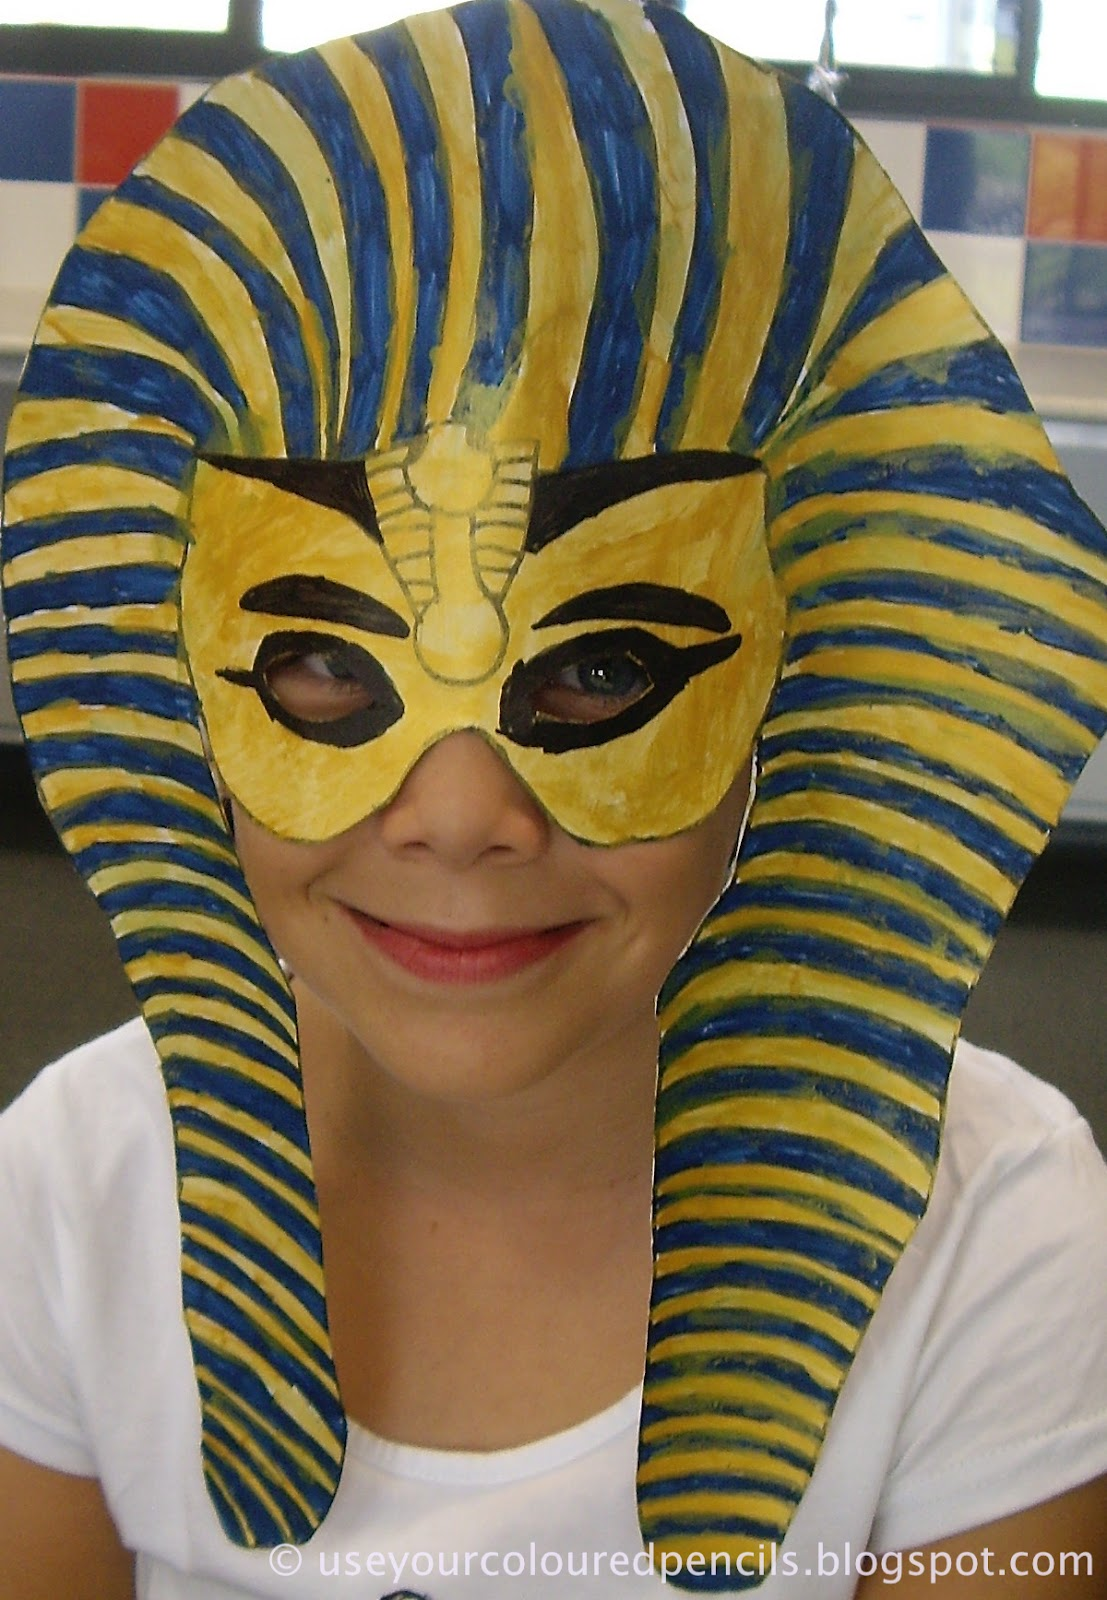 Use Your Coloured Pencils: Tutankhamun Masks